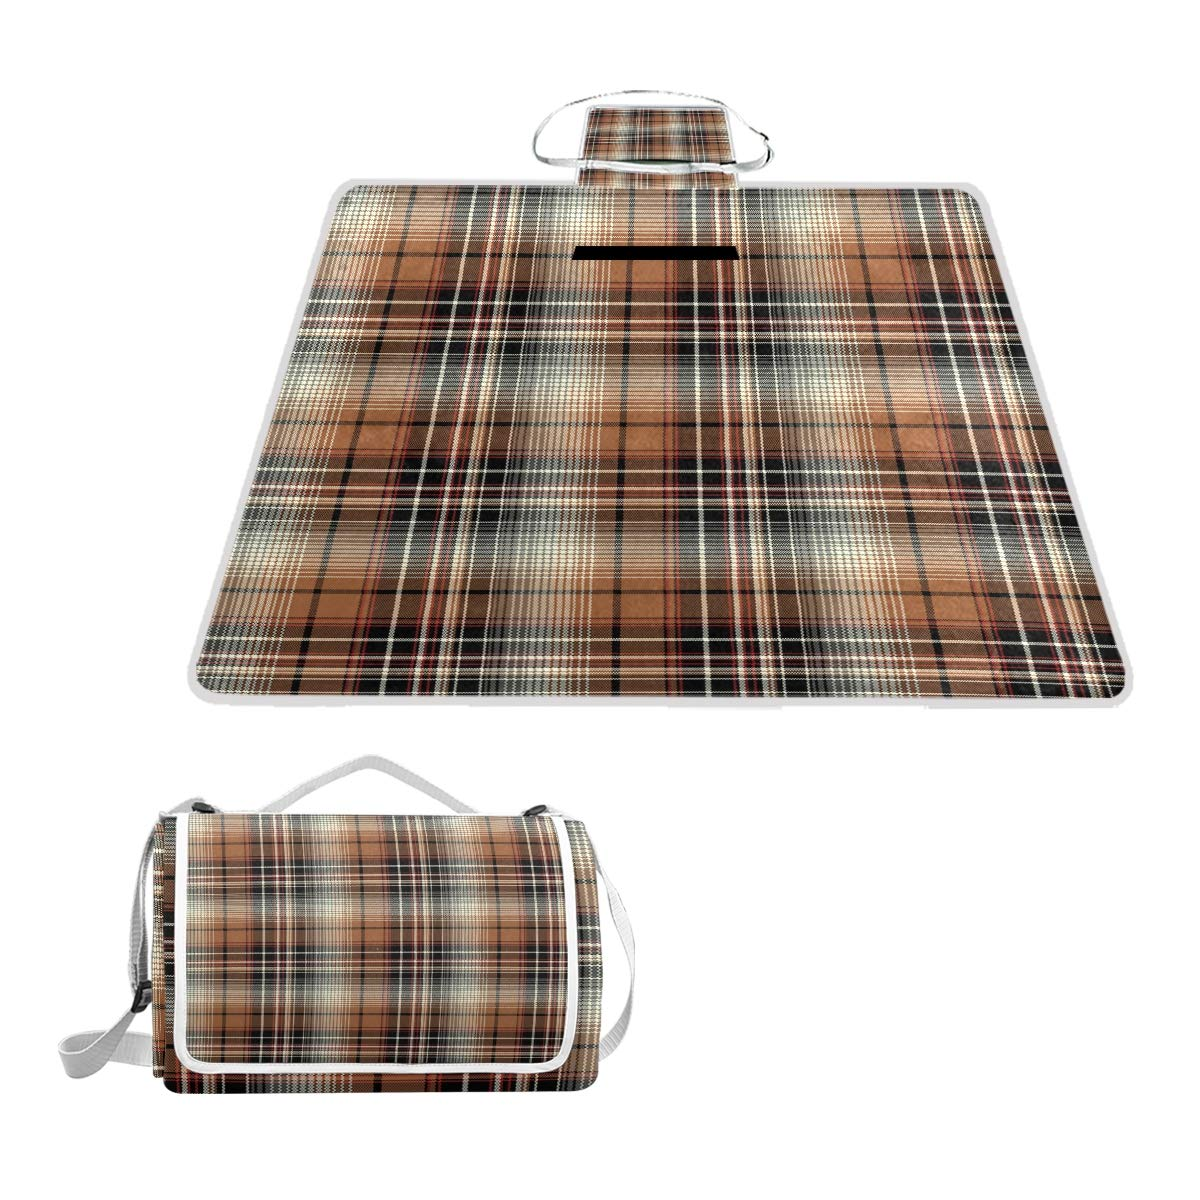 Dark Brown Plaid Decoration Oversized Picnic Mat Outdoor Camping Beach Travel pad Blanket Mat Waterproof by Horatiood Huberyyd